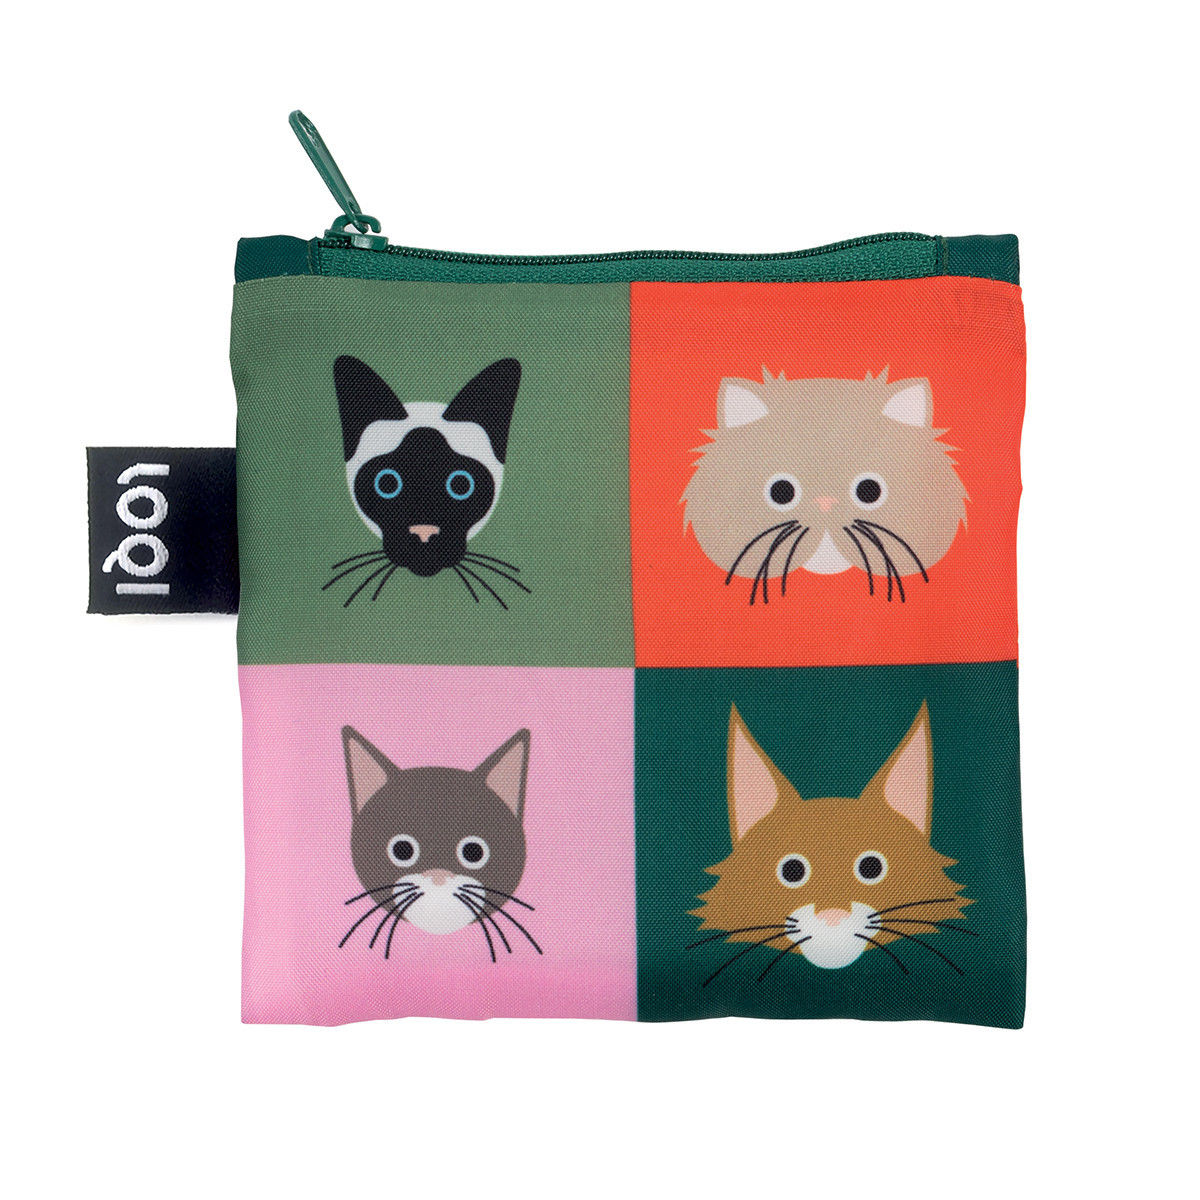 Loqi: Shopping Bag Cats & Dogs Collection - Cats image